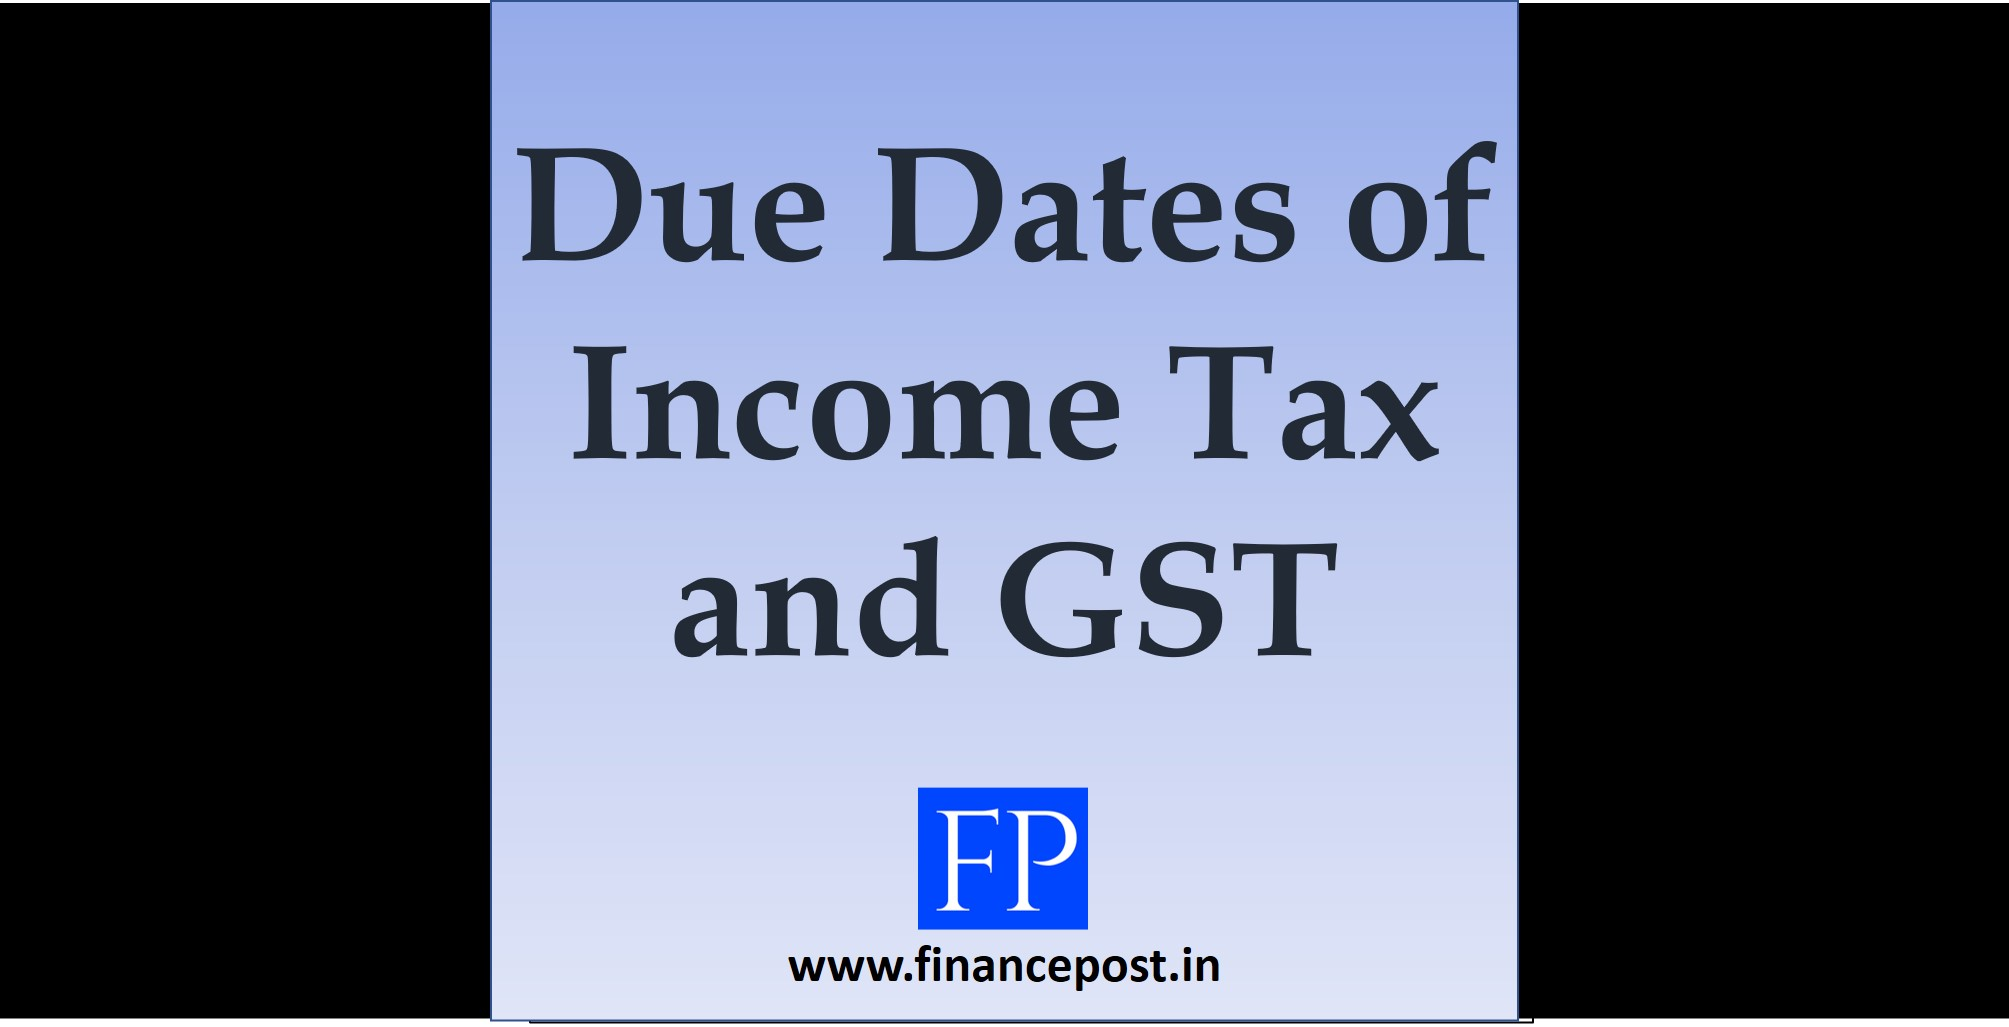 Due Dates of Income Tax and GST